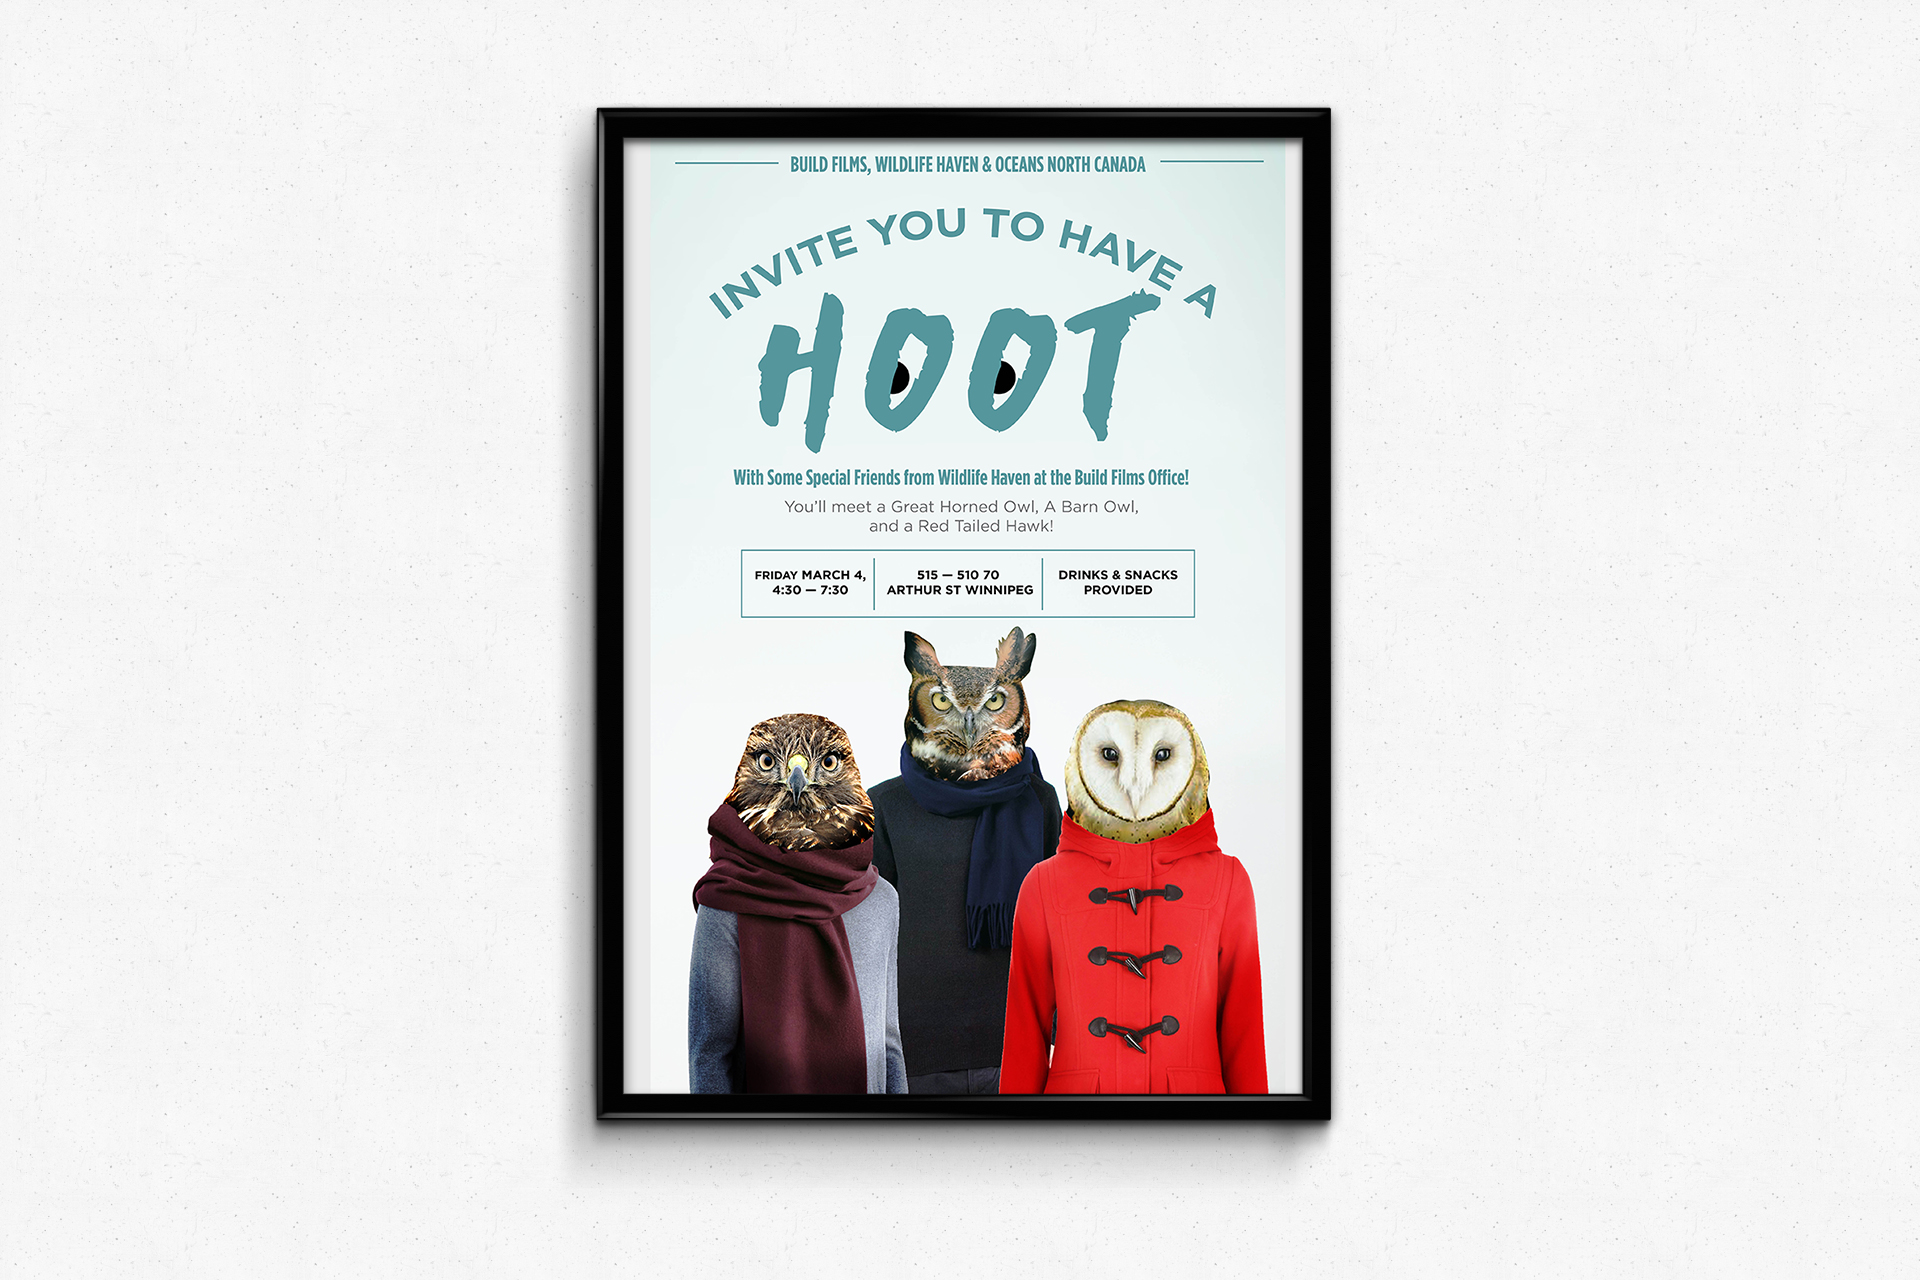 Have a Hoot